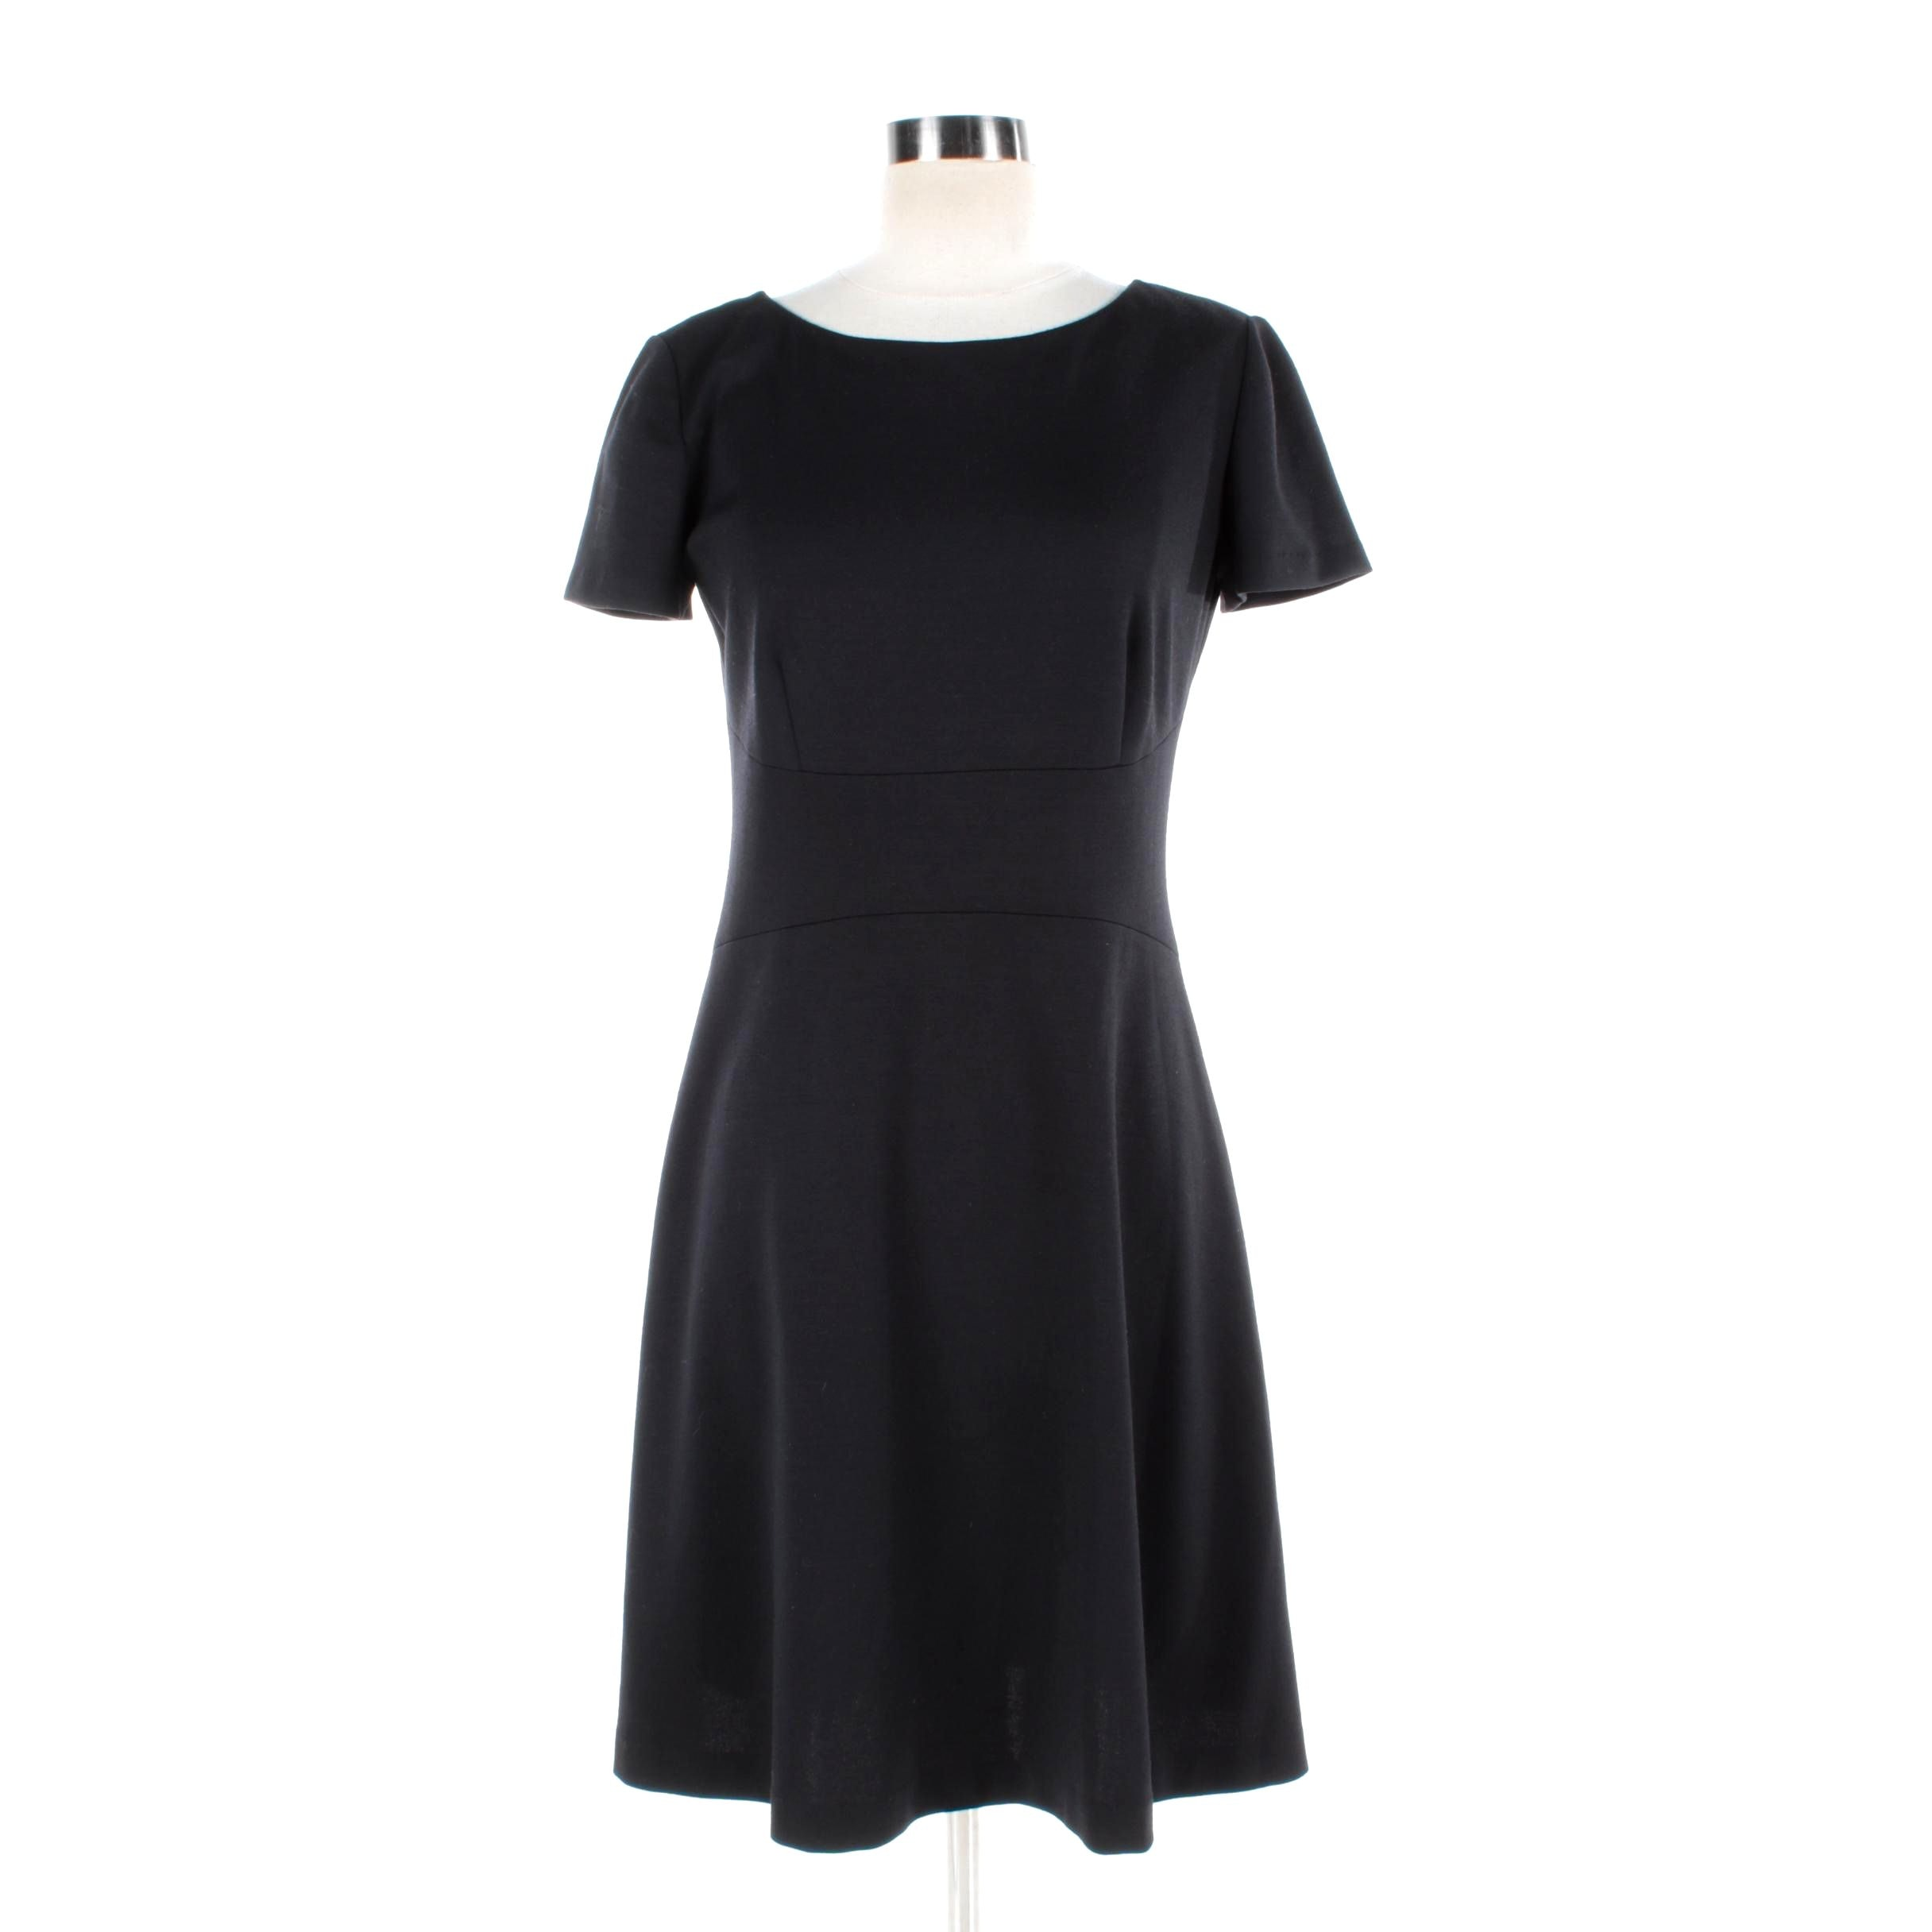 Prada Black Knit Short Sleeve Dress